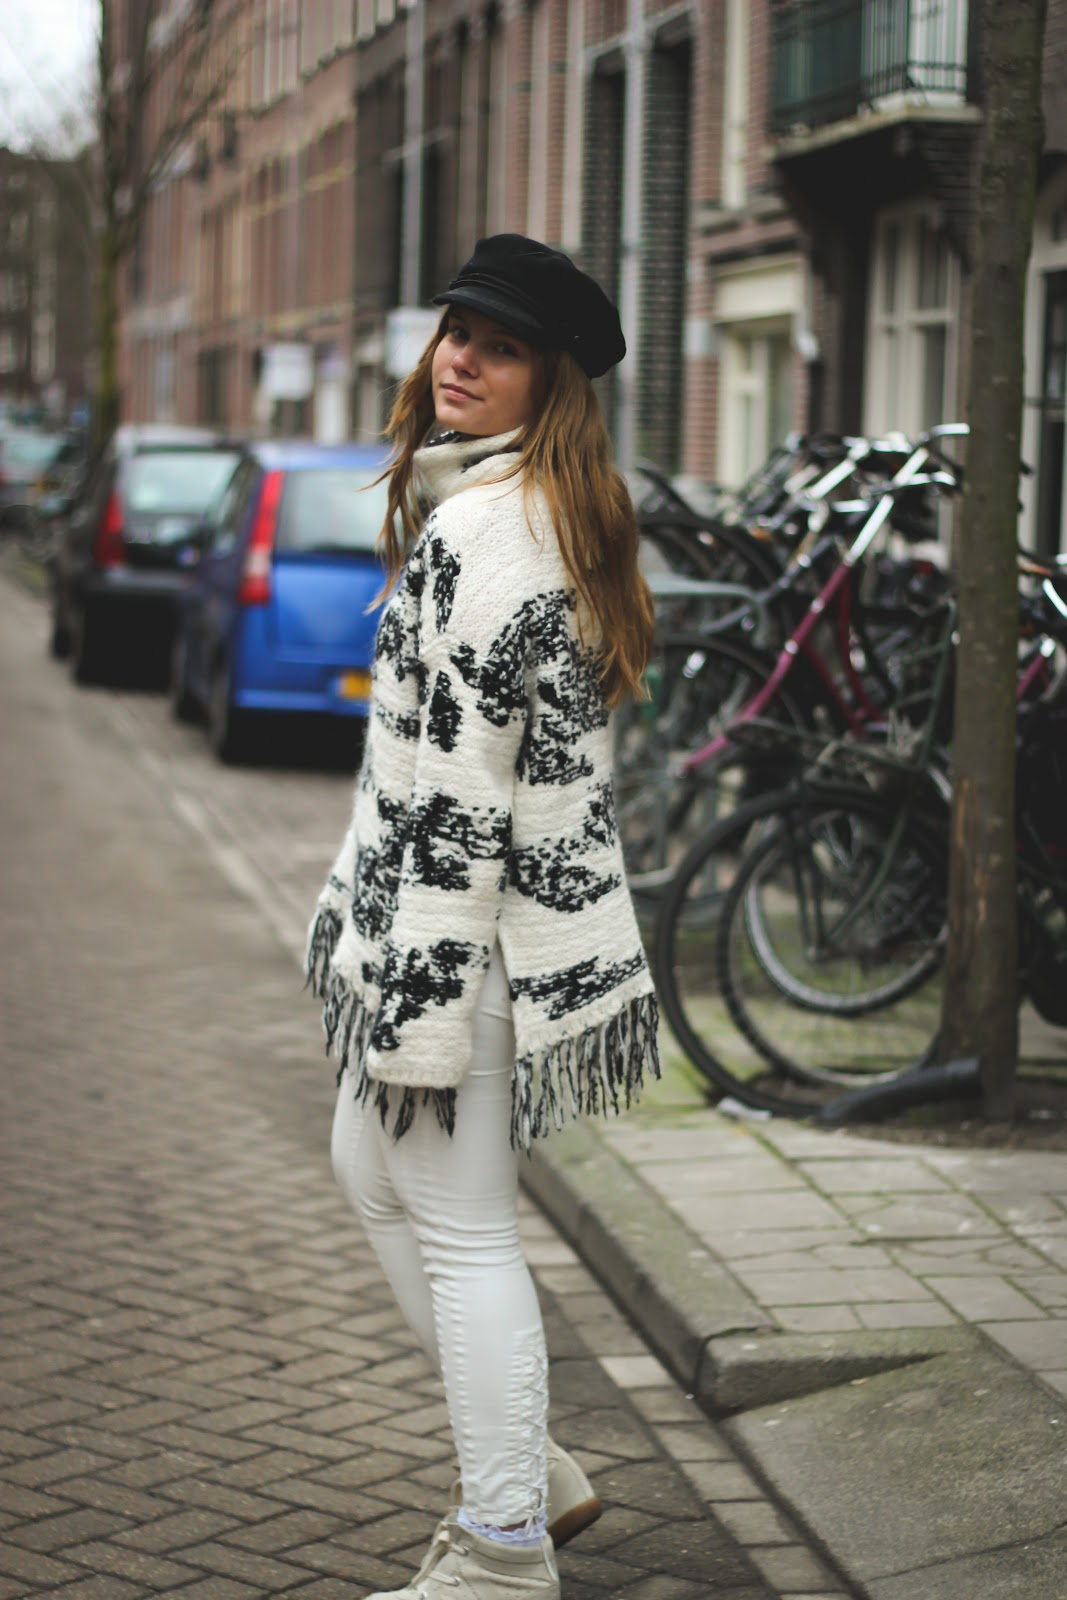 deau, dominique, candido, blogger, fashion, mode, h&m, zara, isabel marant, shoes, sneakers, sweater, knitwear, outfit, post, look,